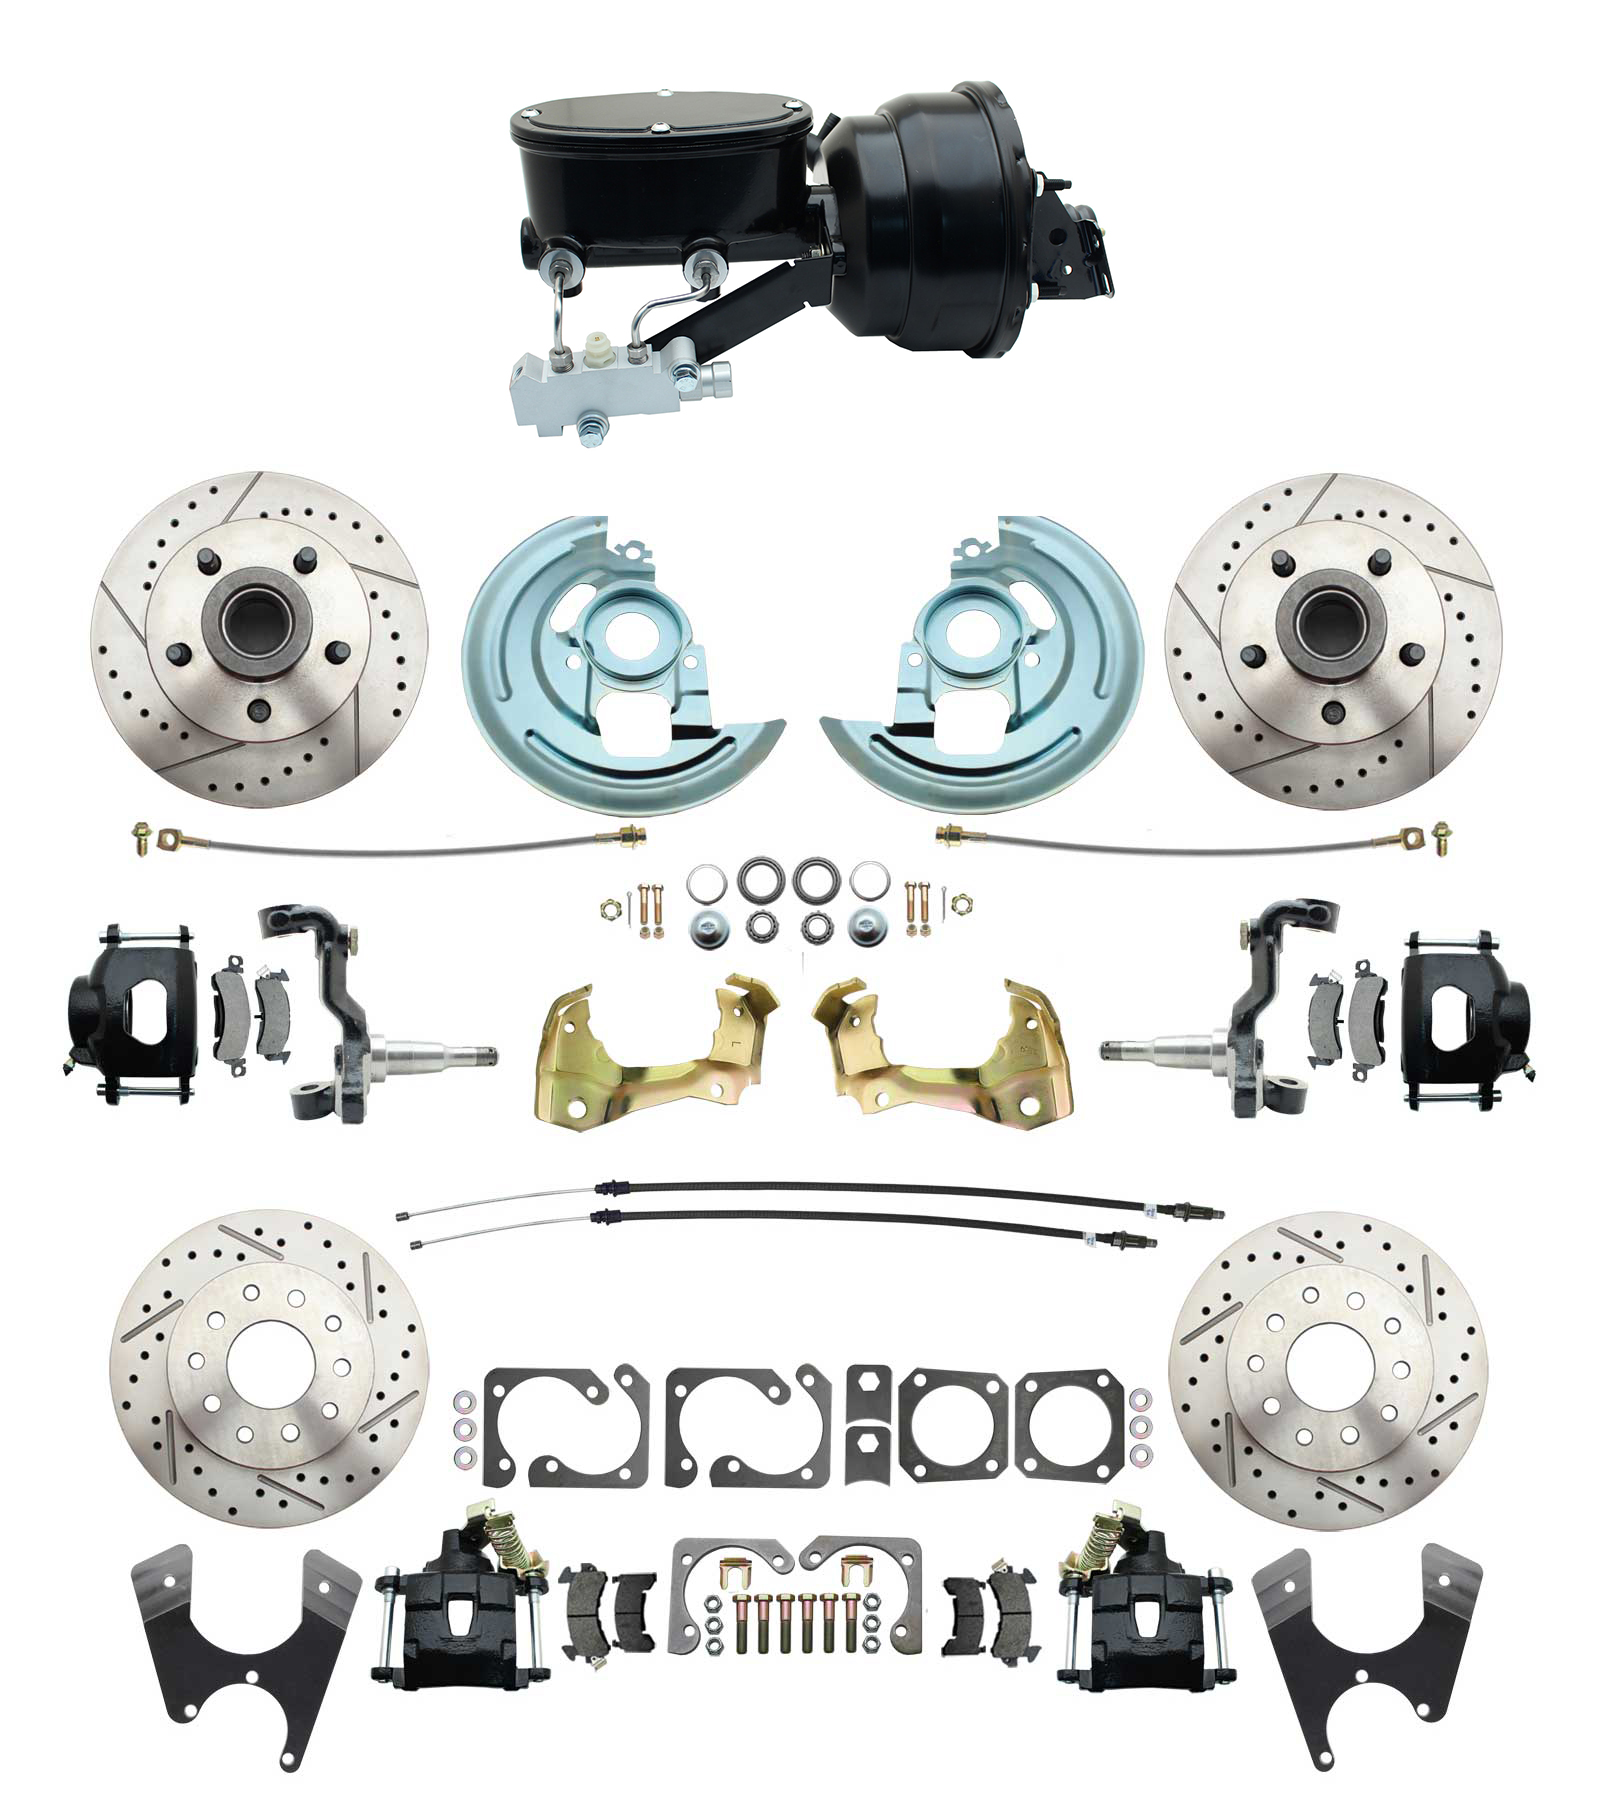 1964-1972 GM A Body Front & Rear Power Disc Brake Conversion Kit Drilled & Slotted & Powder Coated Black Calipers Rotors W/ Wilwood Style 8 Dual Powder Coated Black Booster Kit